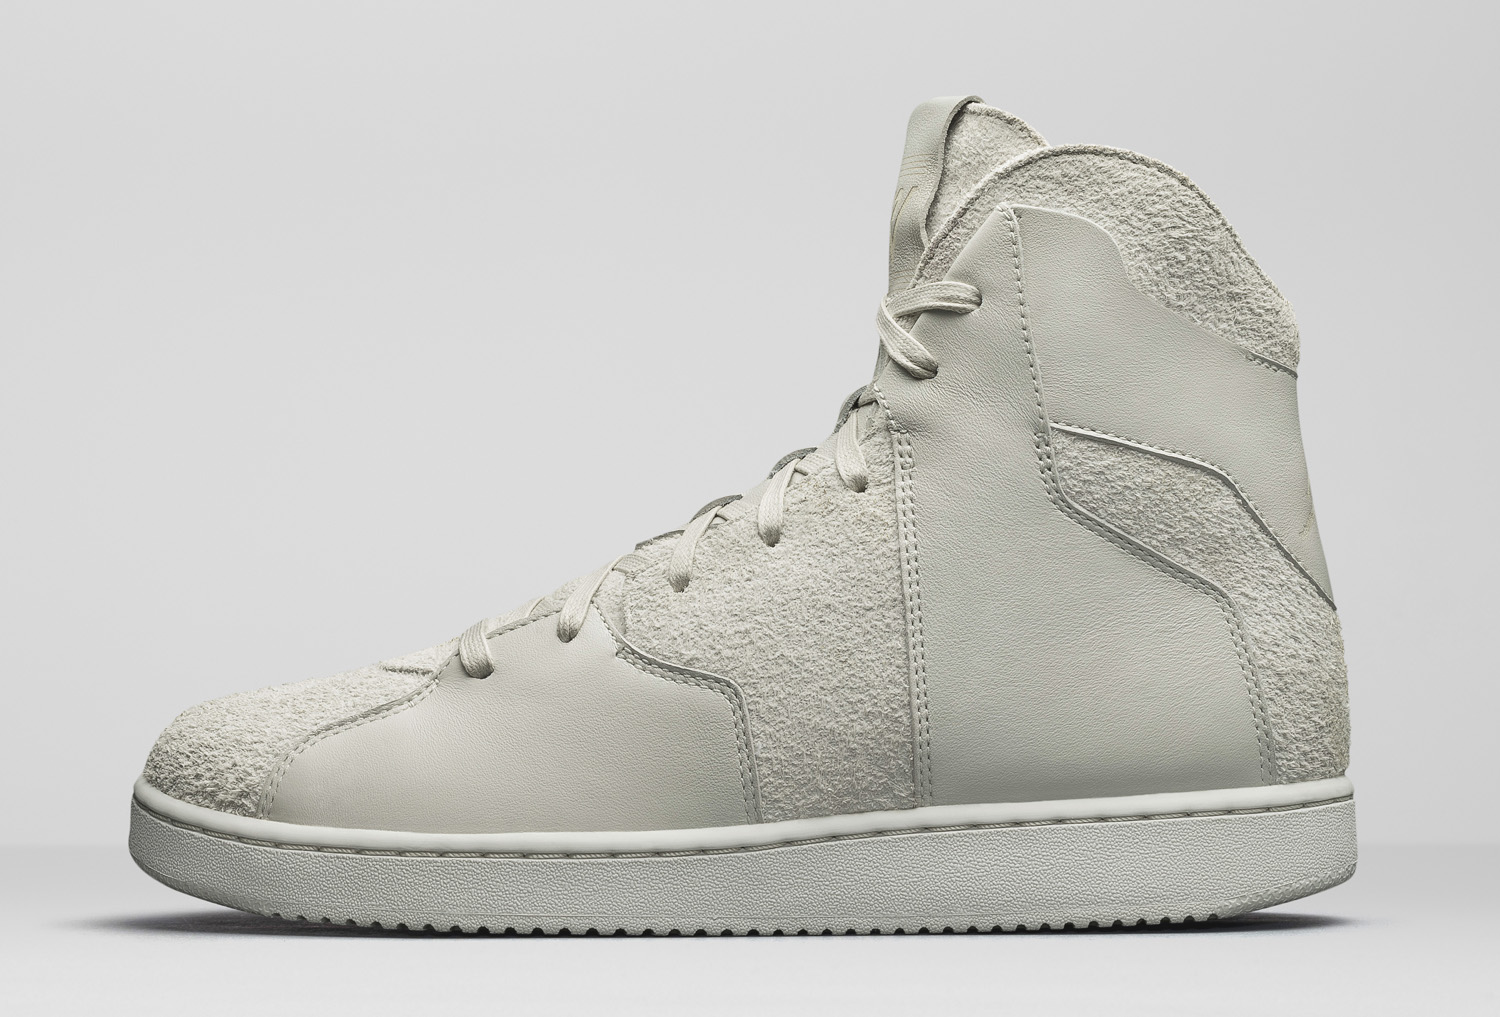 Jordan Westbrook 0.2 Cream Profile